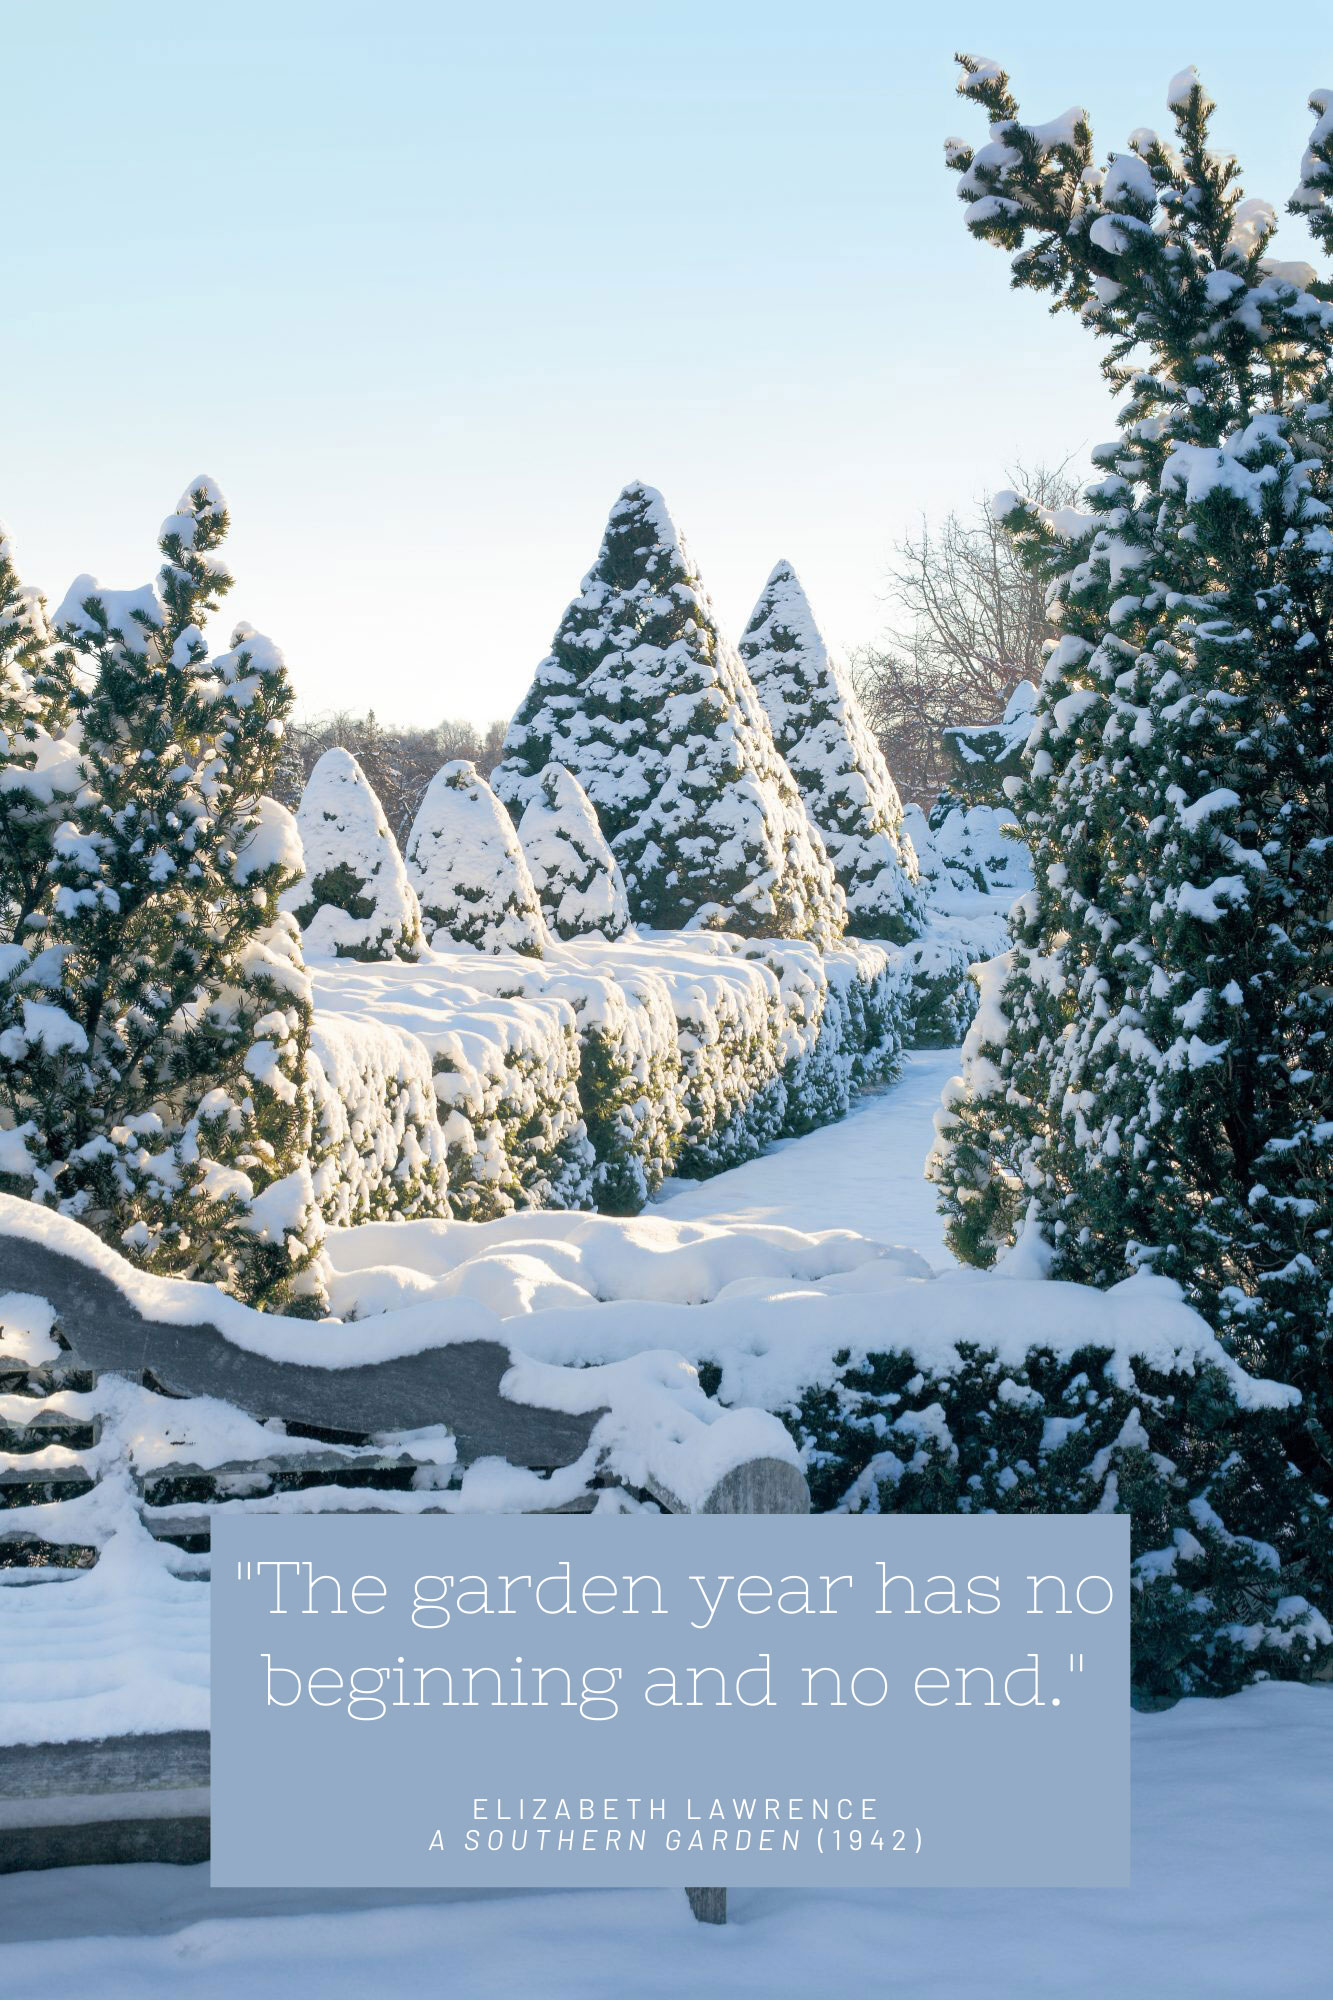 Quotes About the Magic of Gardening